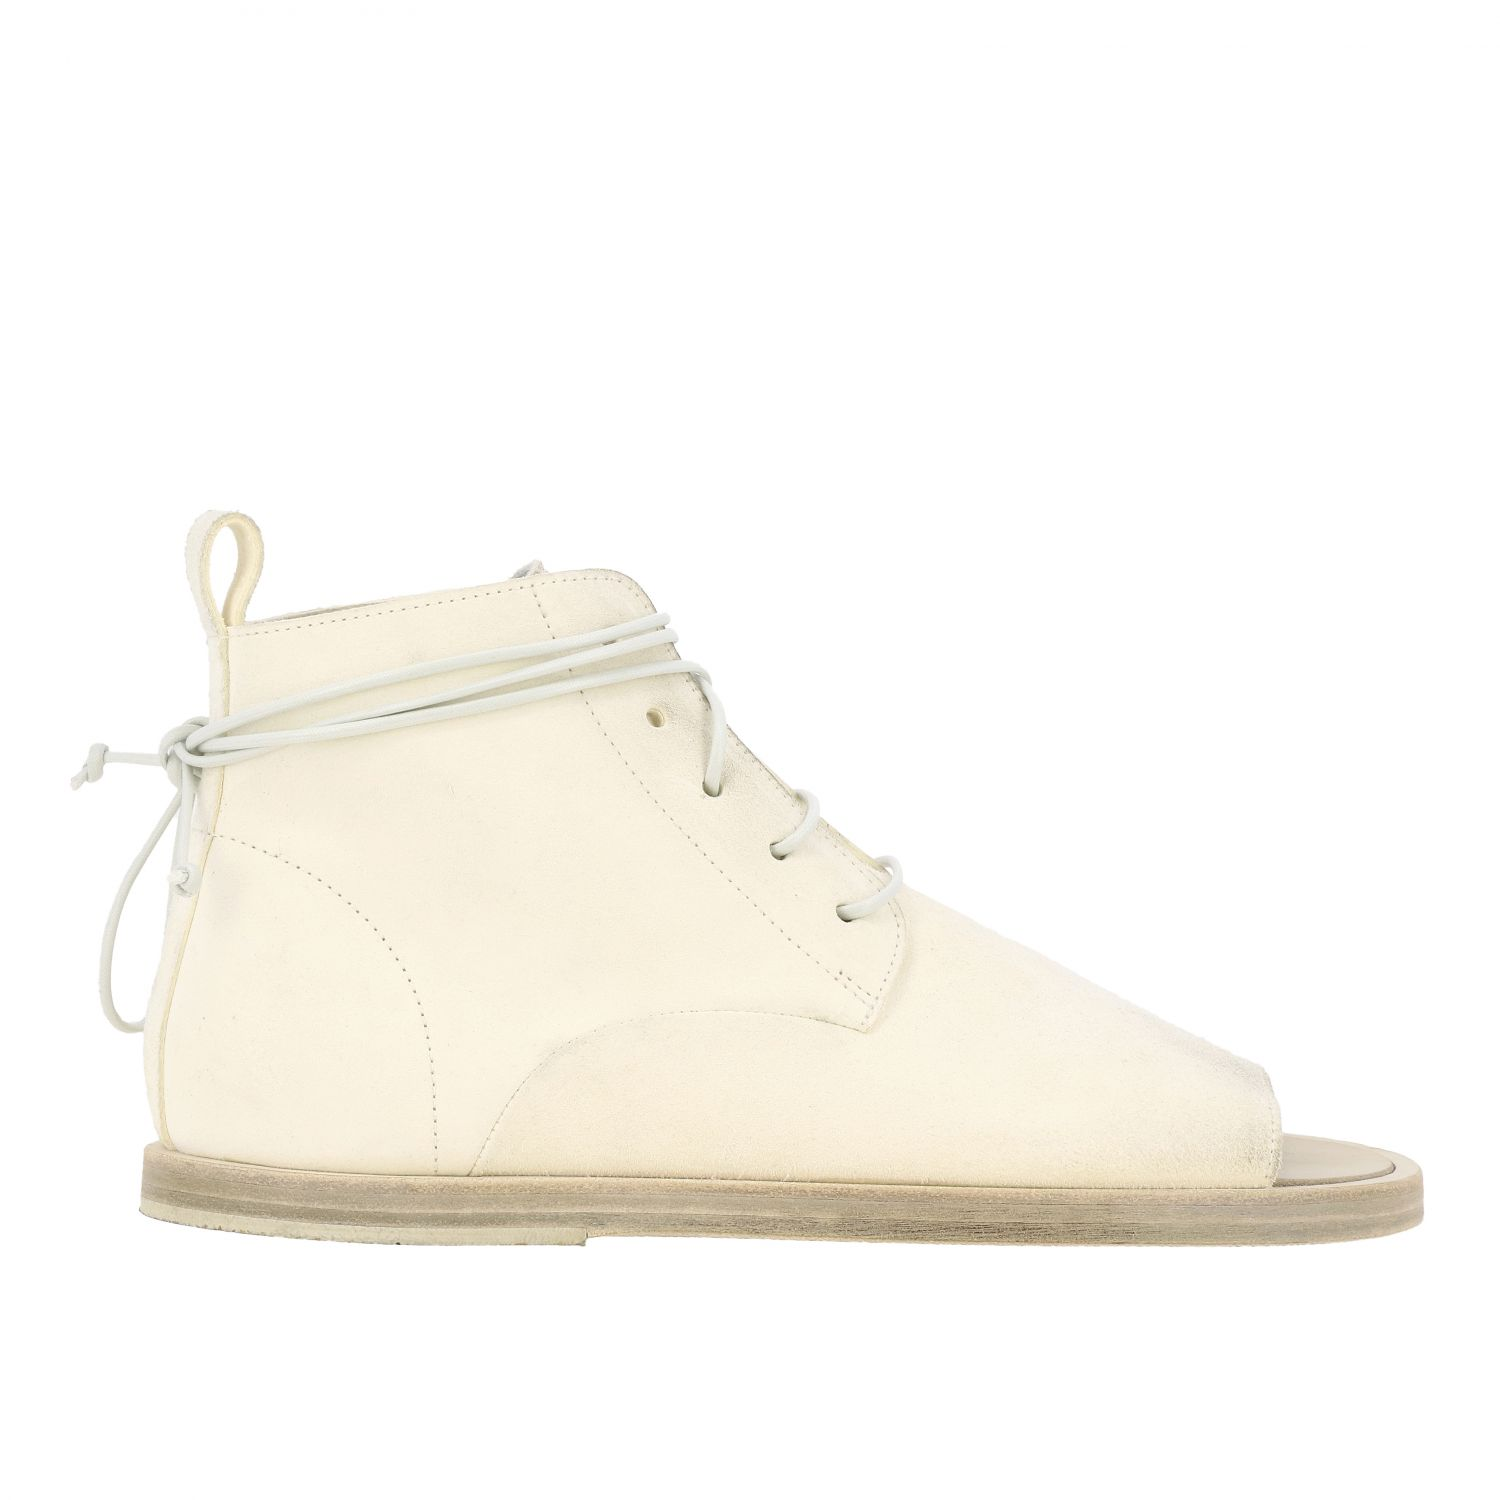 Sandals Marsell: Sandals men Marsell white 1